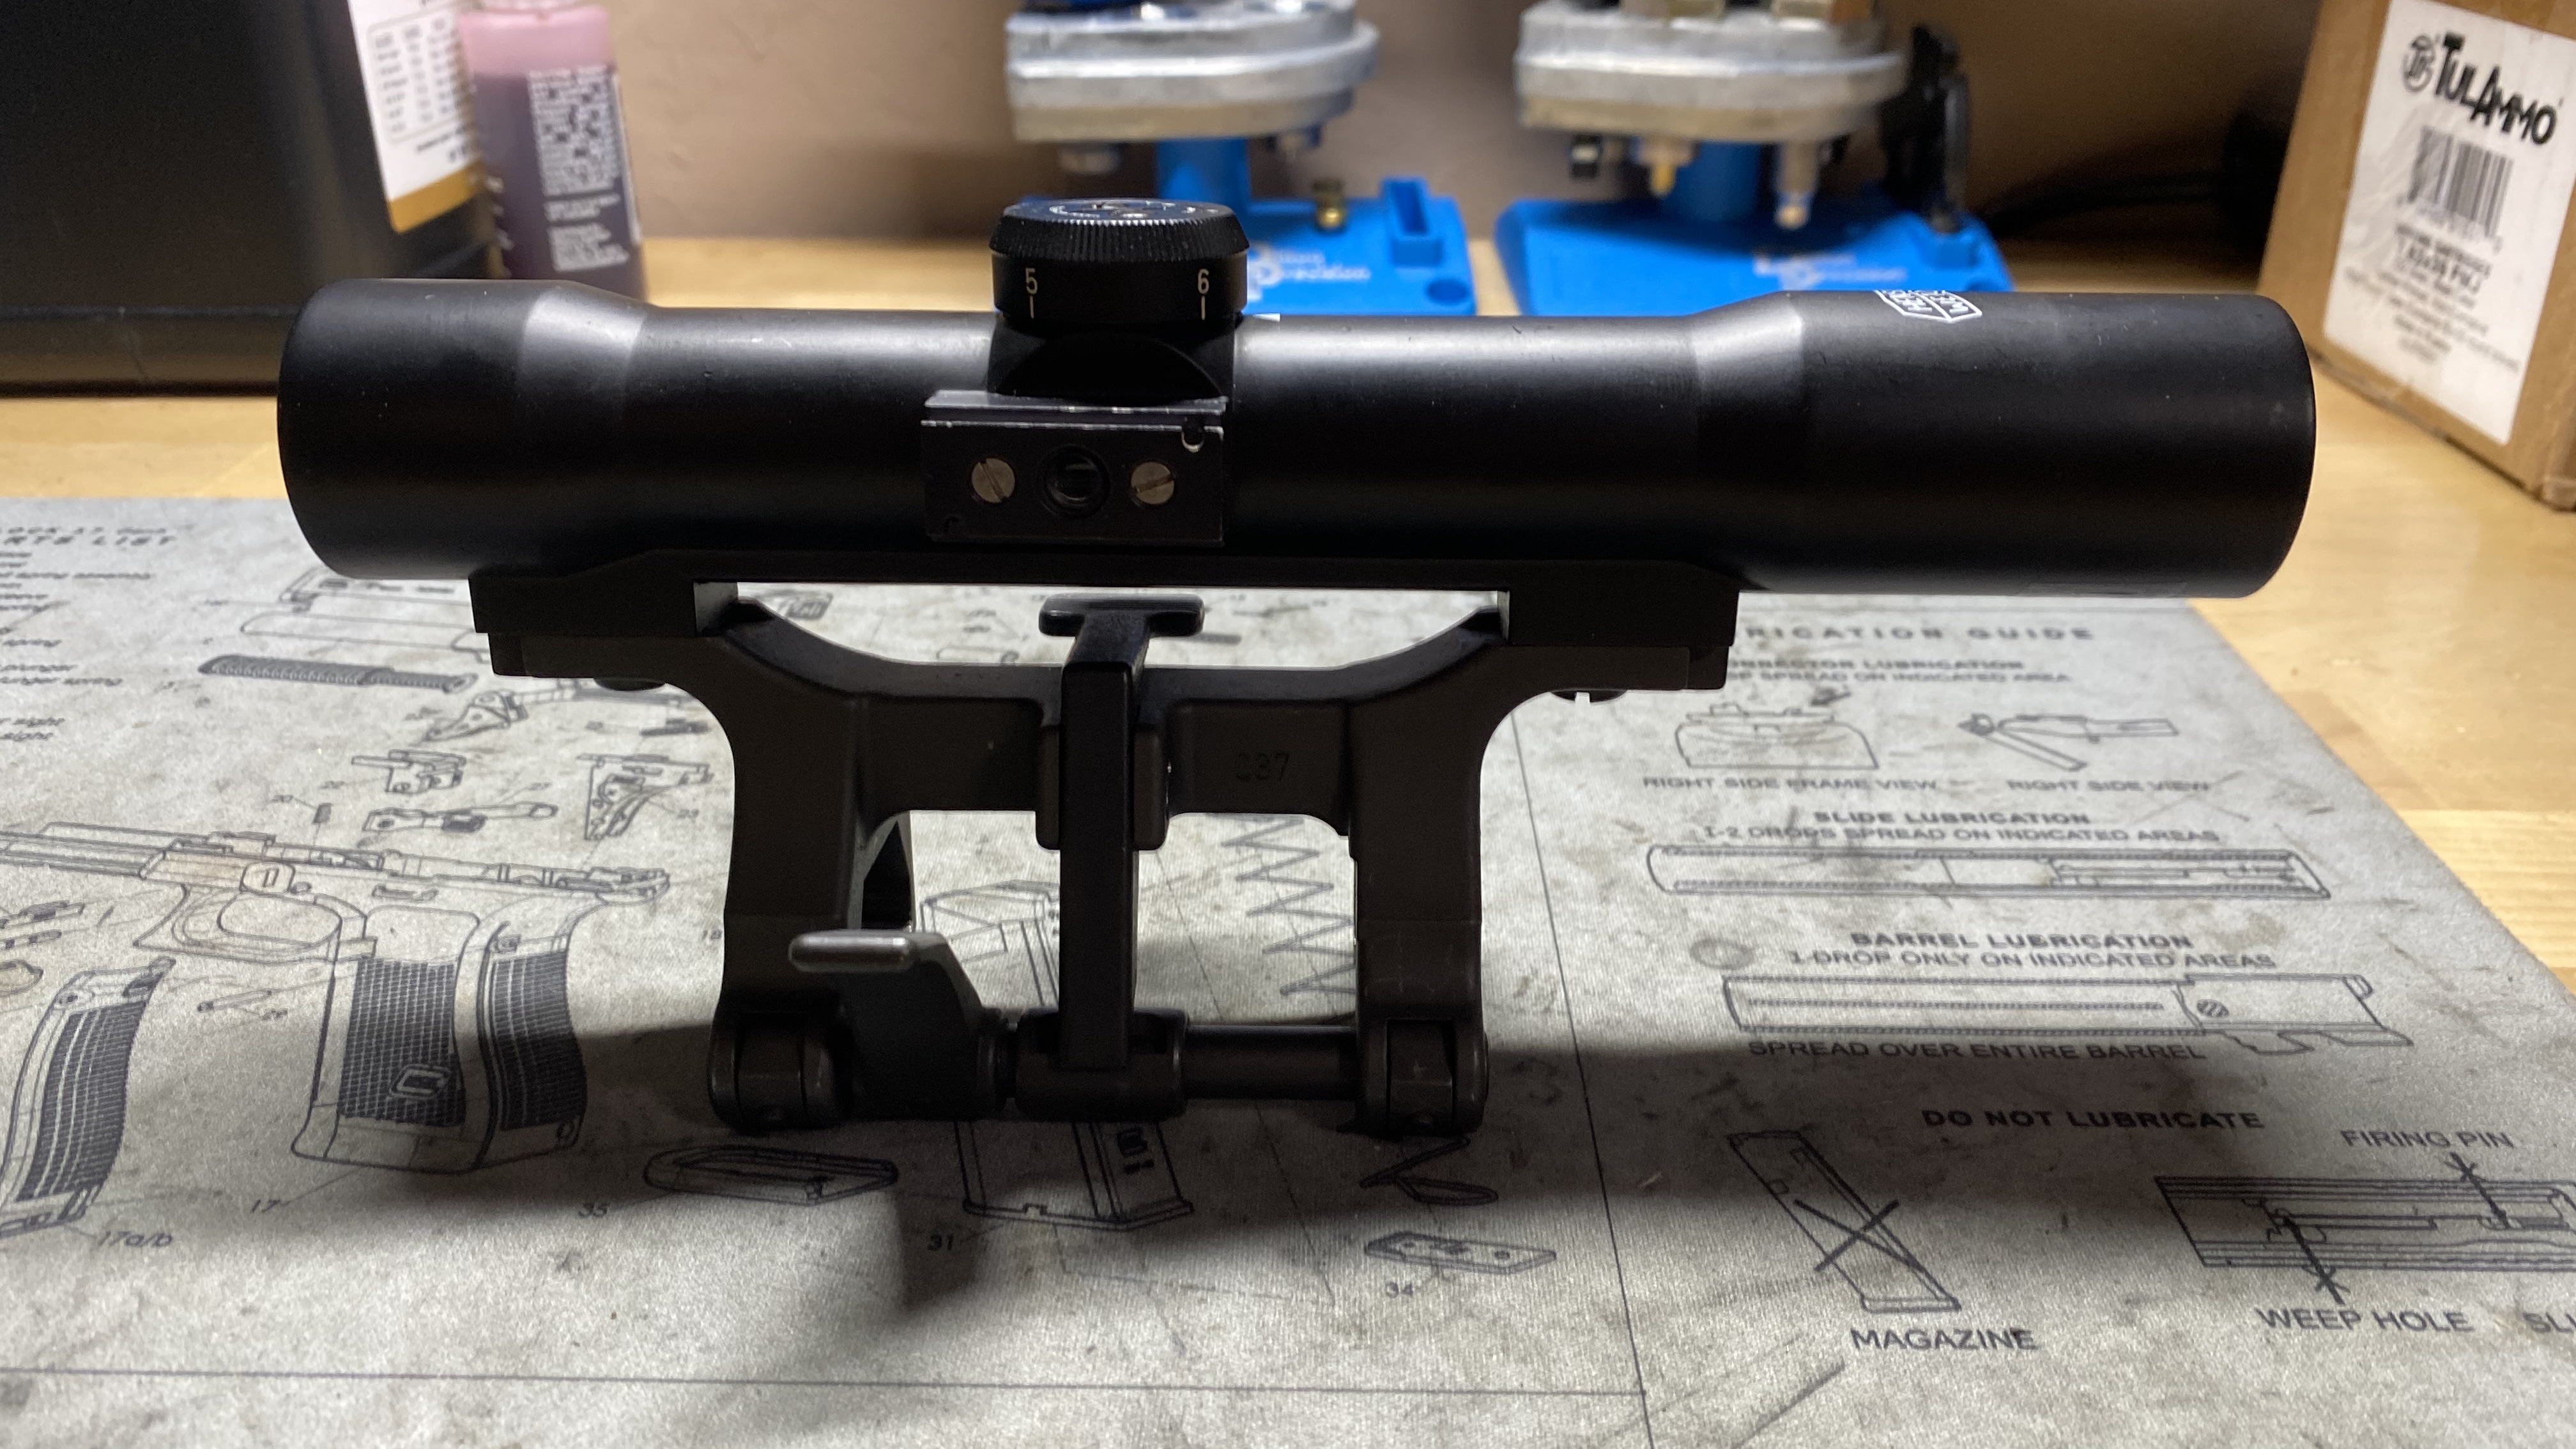 WTS: Hensoldt Wetzlar Fero Z24 scope-ee5f6fb7-cf65-4bf2-9148-a5841de03c08.jpeg